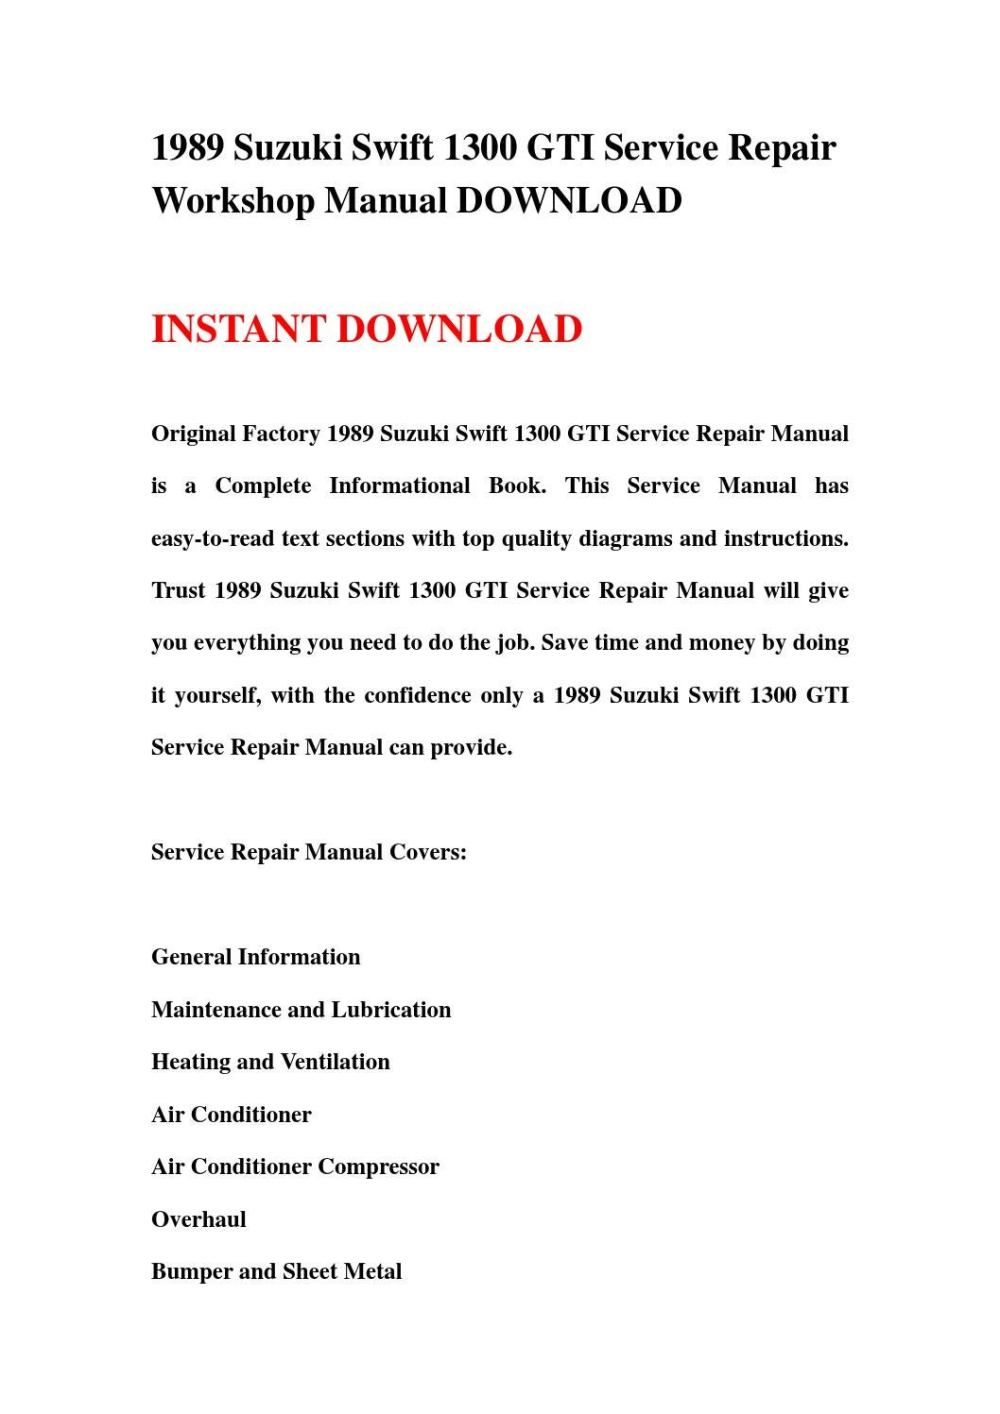 medium resolution of 1989 suzuki swift 1300 gti service repair workshop manual download by hews issuu